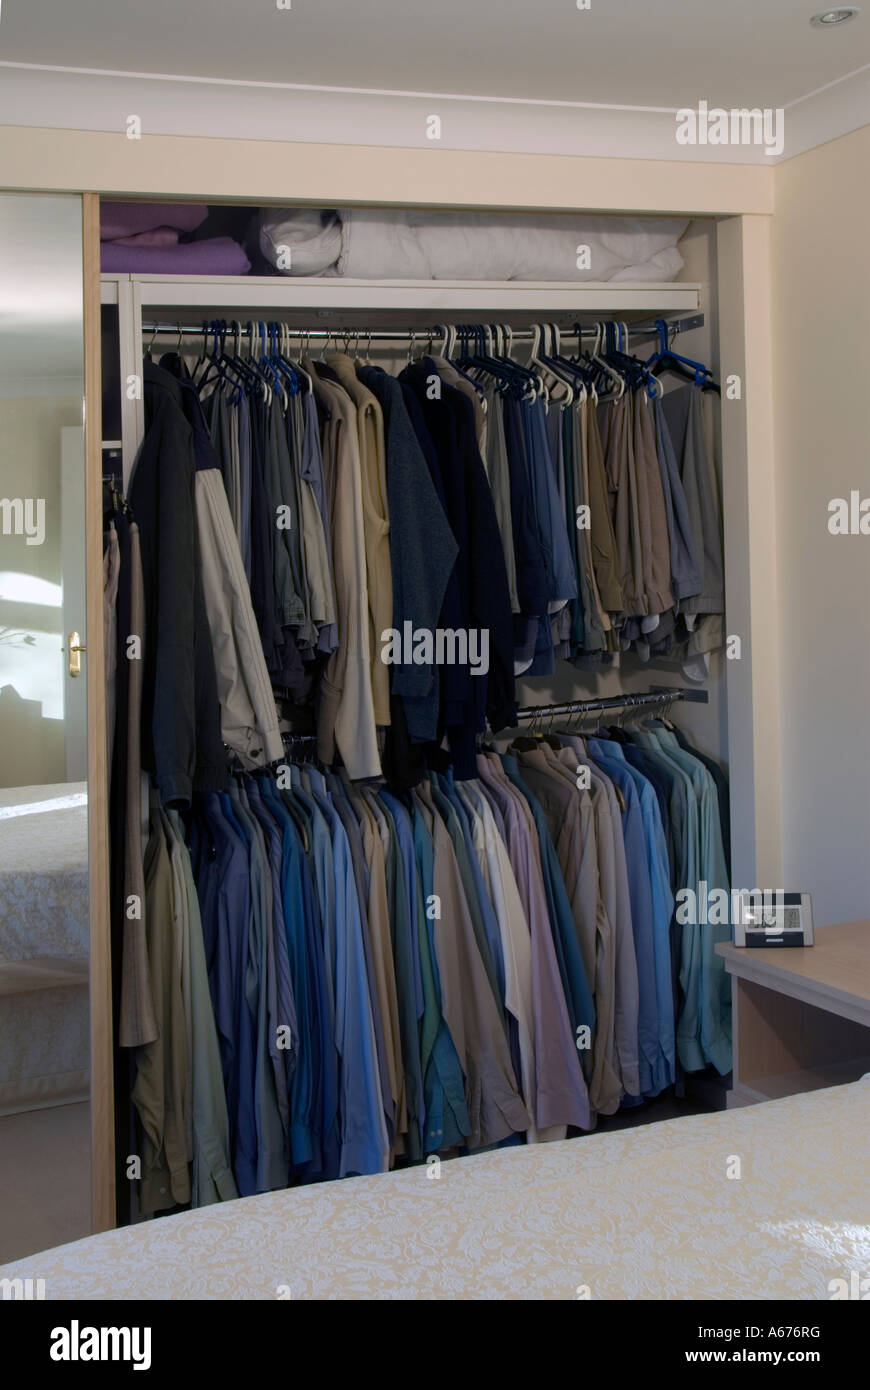 Male Section Shared Built In Open Tidy Bedroom Wardrobe Full Of Mens Stock Photo Alamy